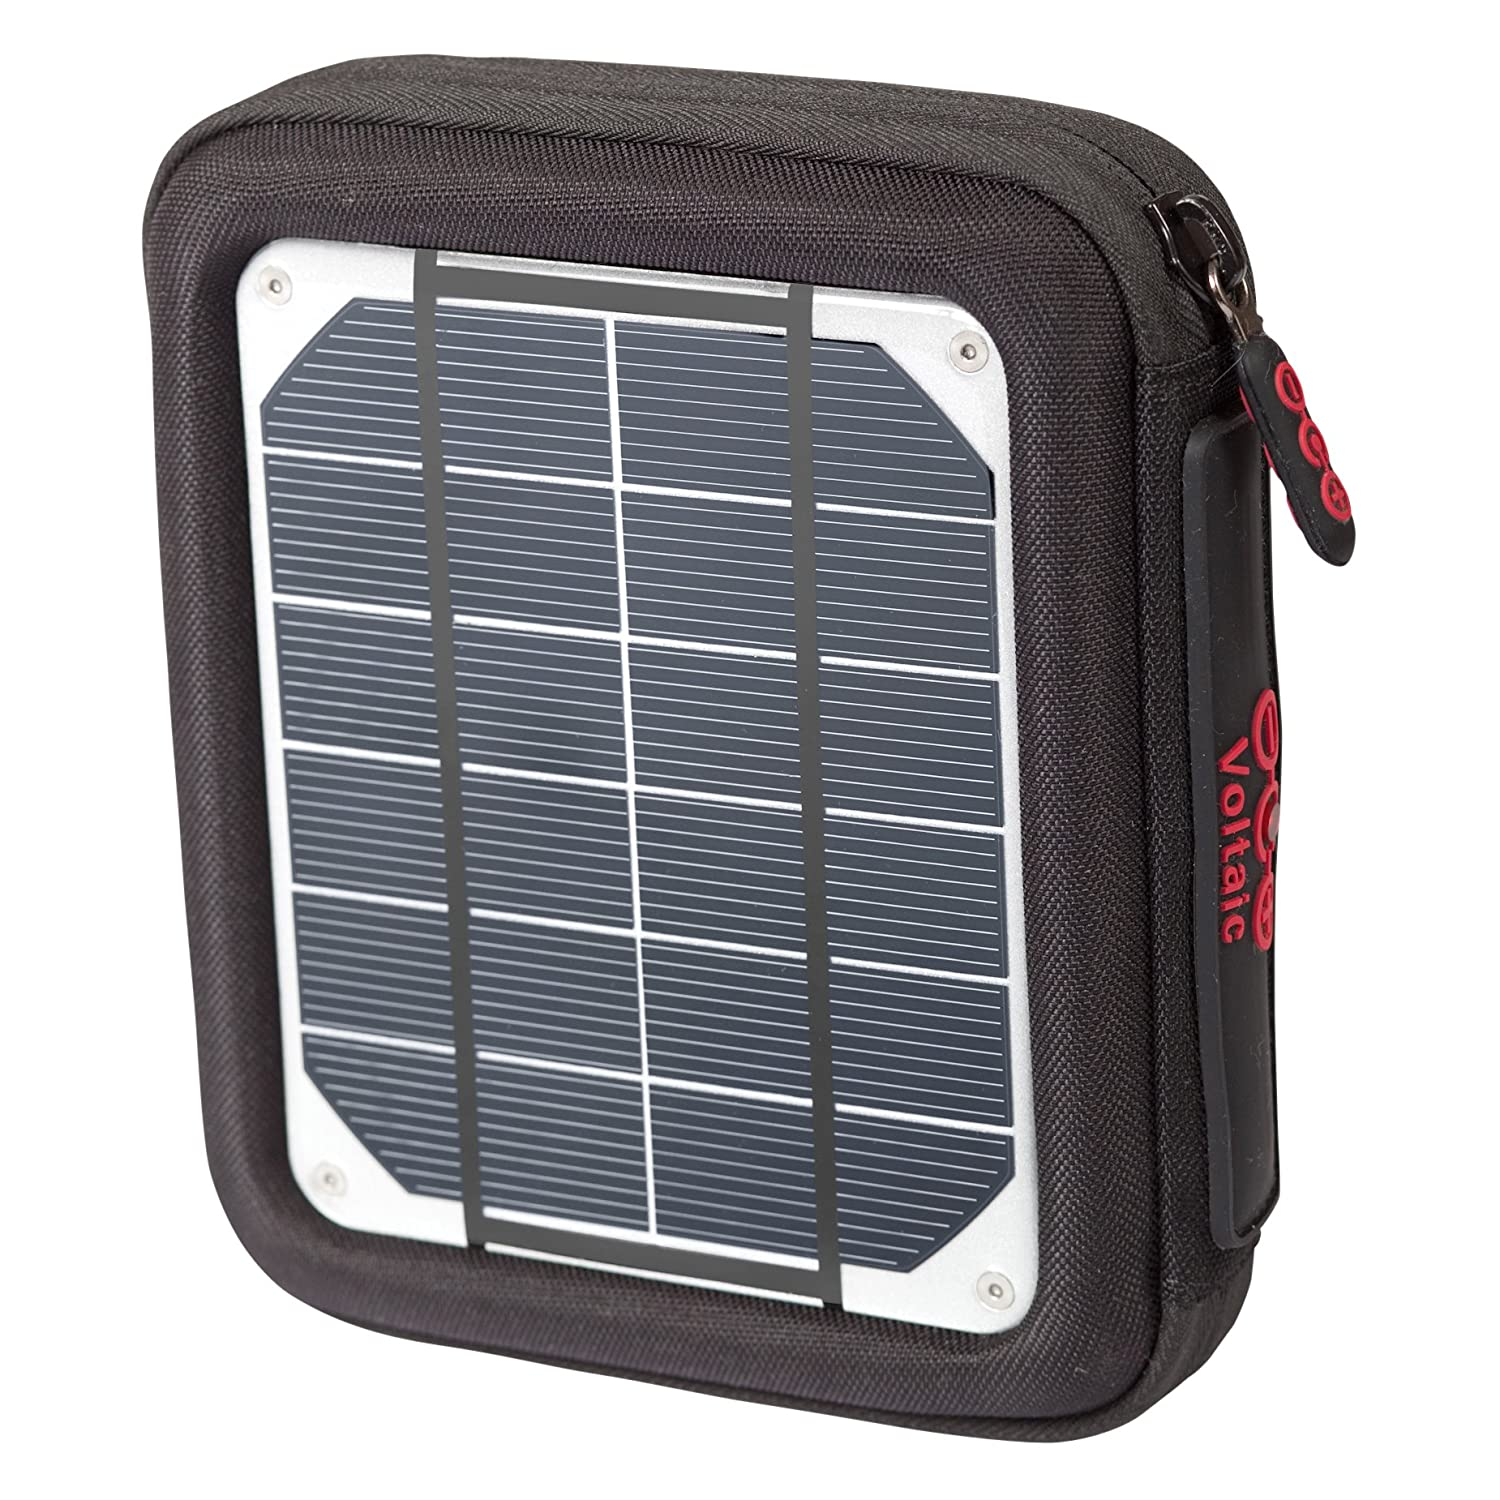 Voltaic Amp solar power phone charger